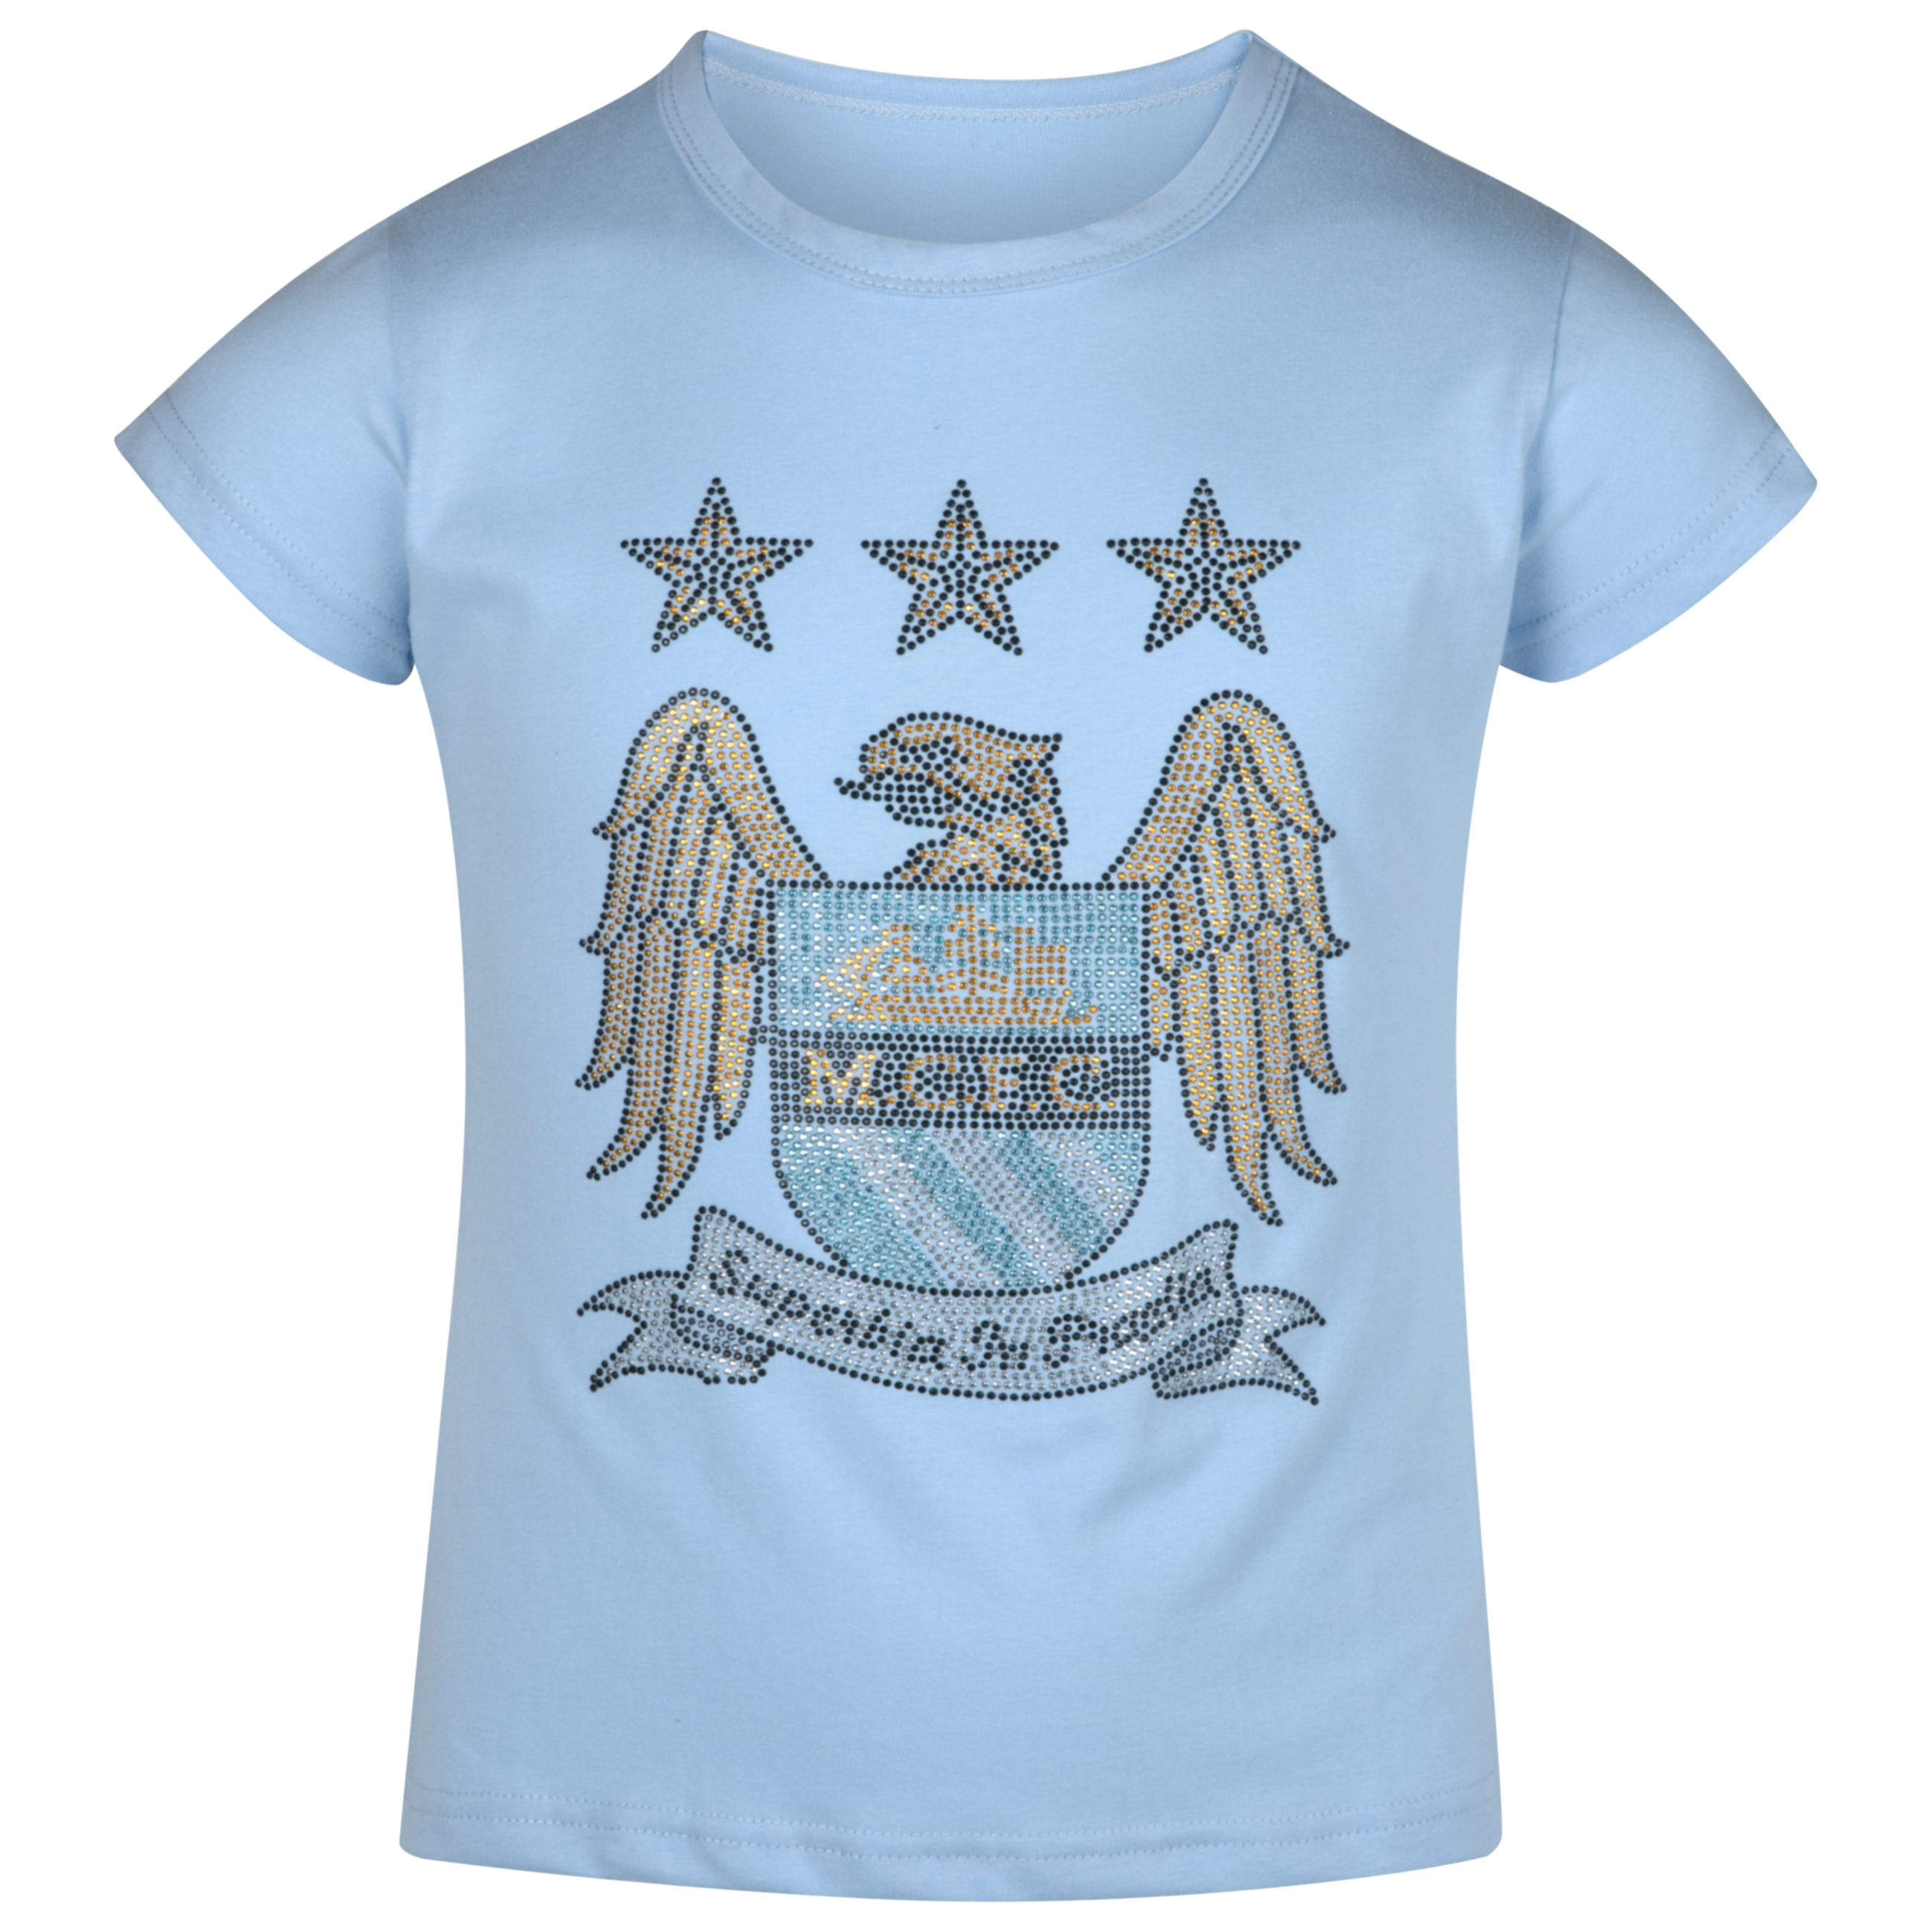 Manchester City Essential Rhinestone T-Shirt - Sky - Infant Girls